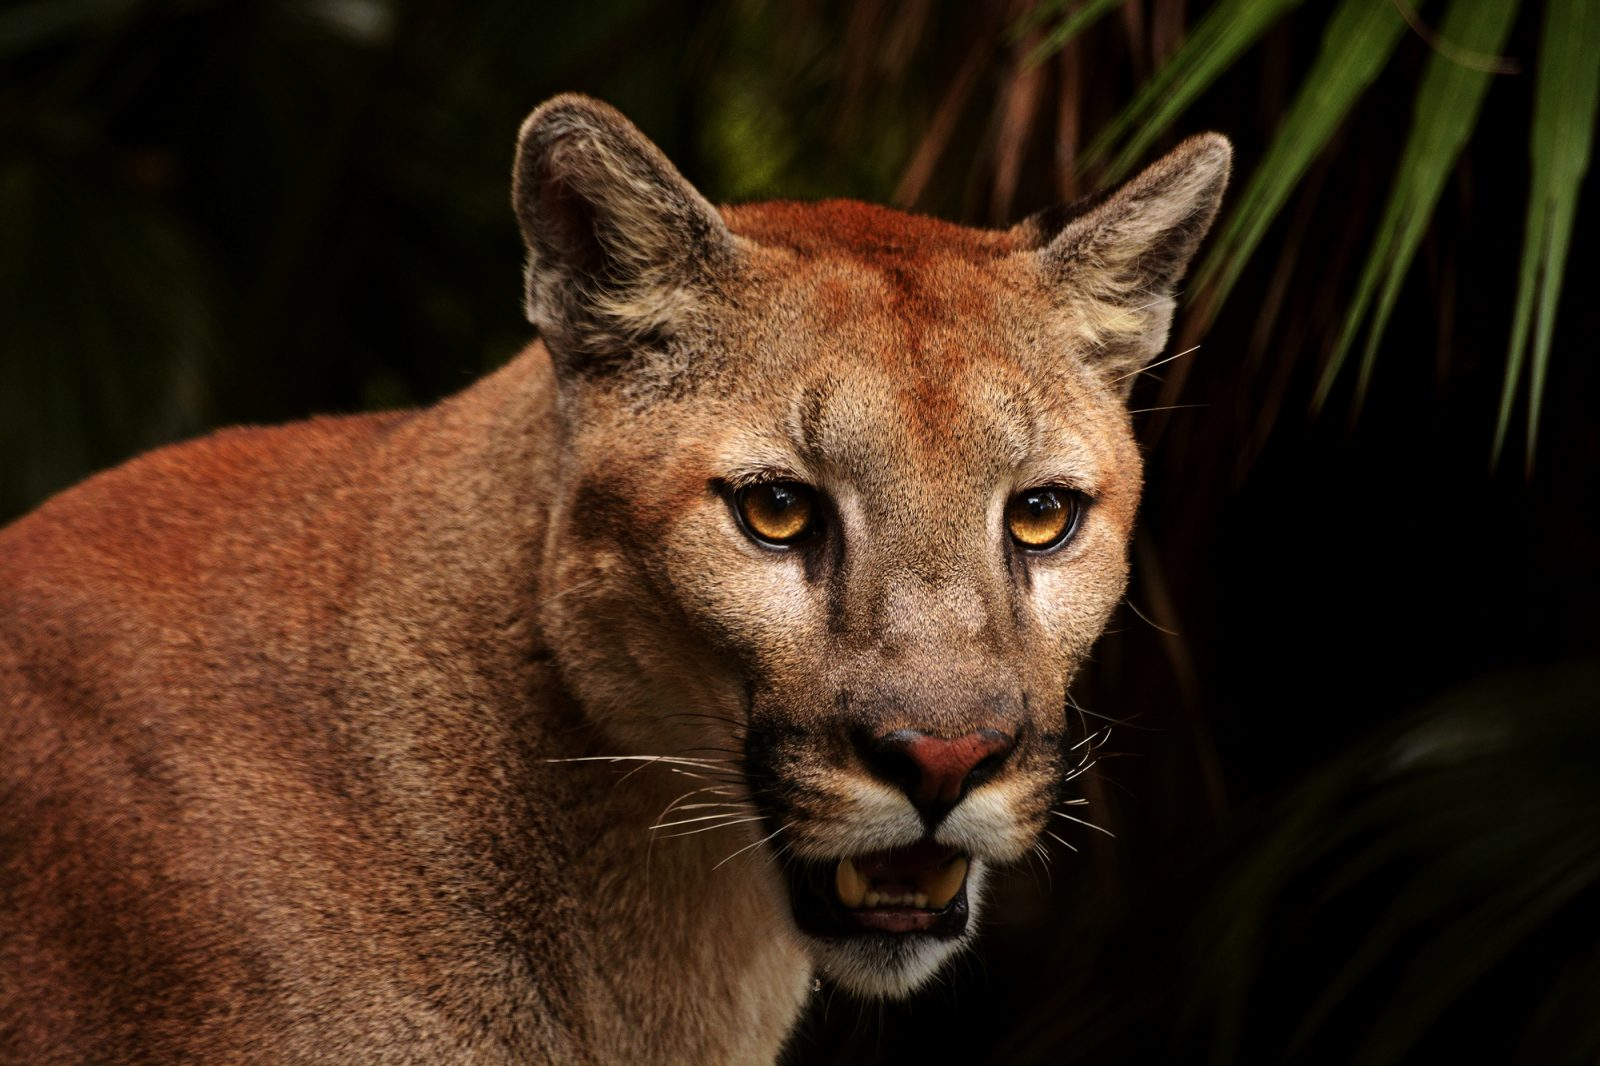 The Cougar